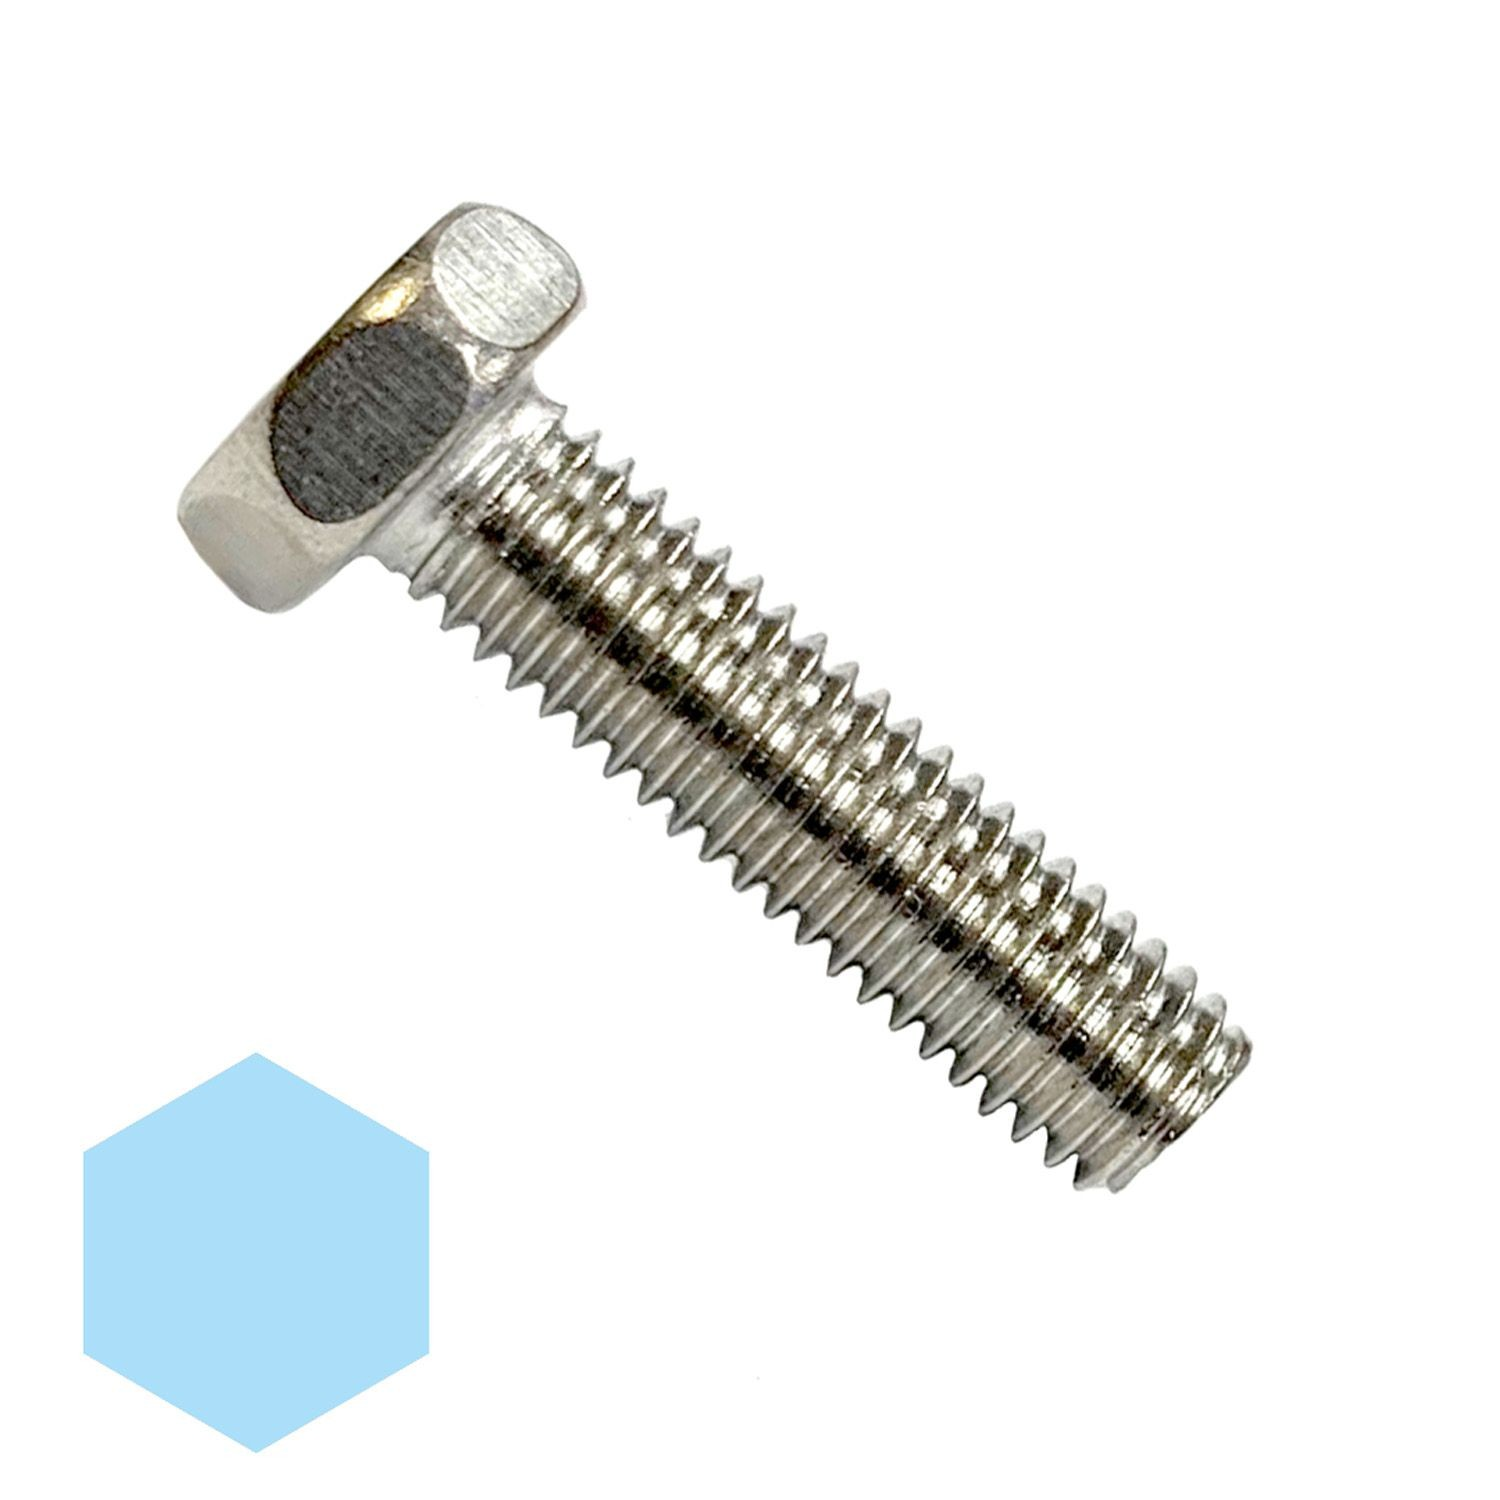 "#10-24 x 5/8"" Stainless Steel Hex Head Machine Screw 18-8"